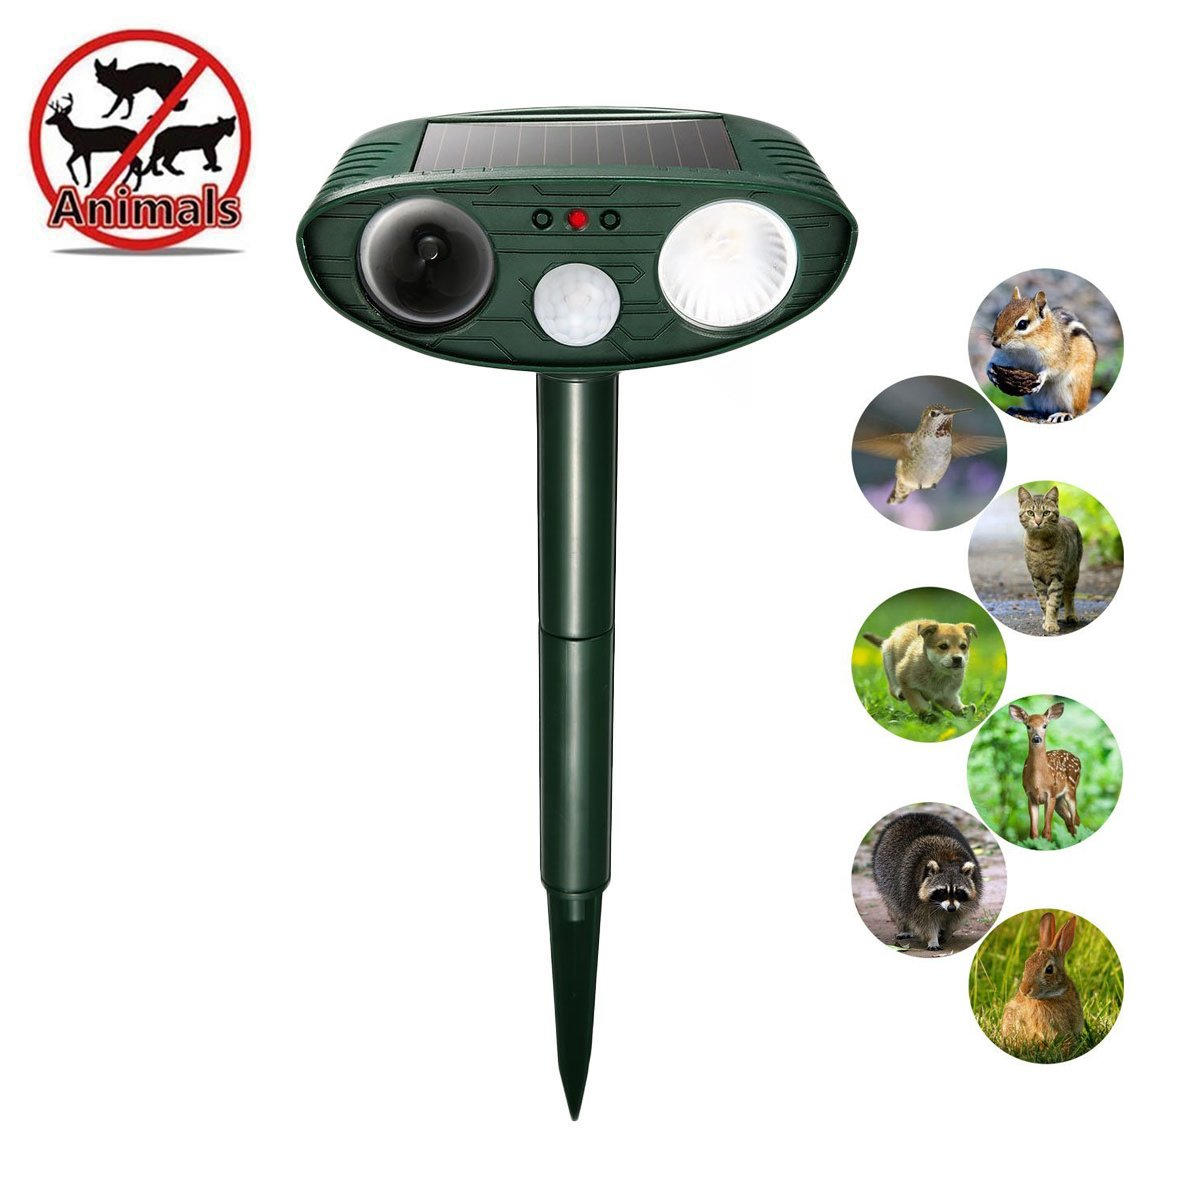 YmissL Ultrasonic Animal Repellent,2018 Upgraded Outdoor Solar Motion Sensor Repeller with White Flashing Lights, Dog Repeller, Cat Repellent,Foxes Repeller,Rodent Repellent (Green04) by YmissL